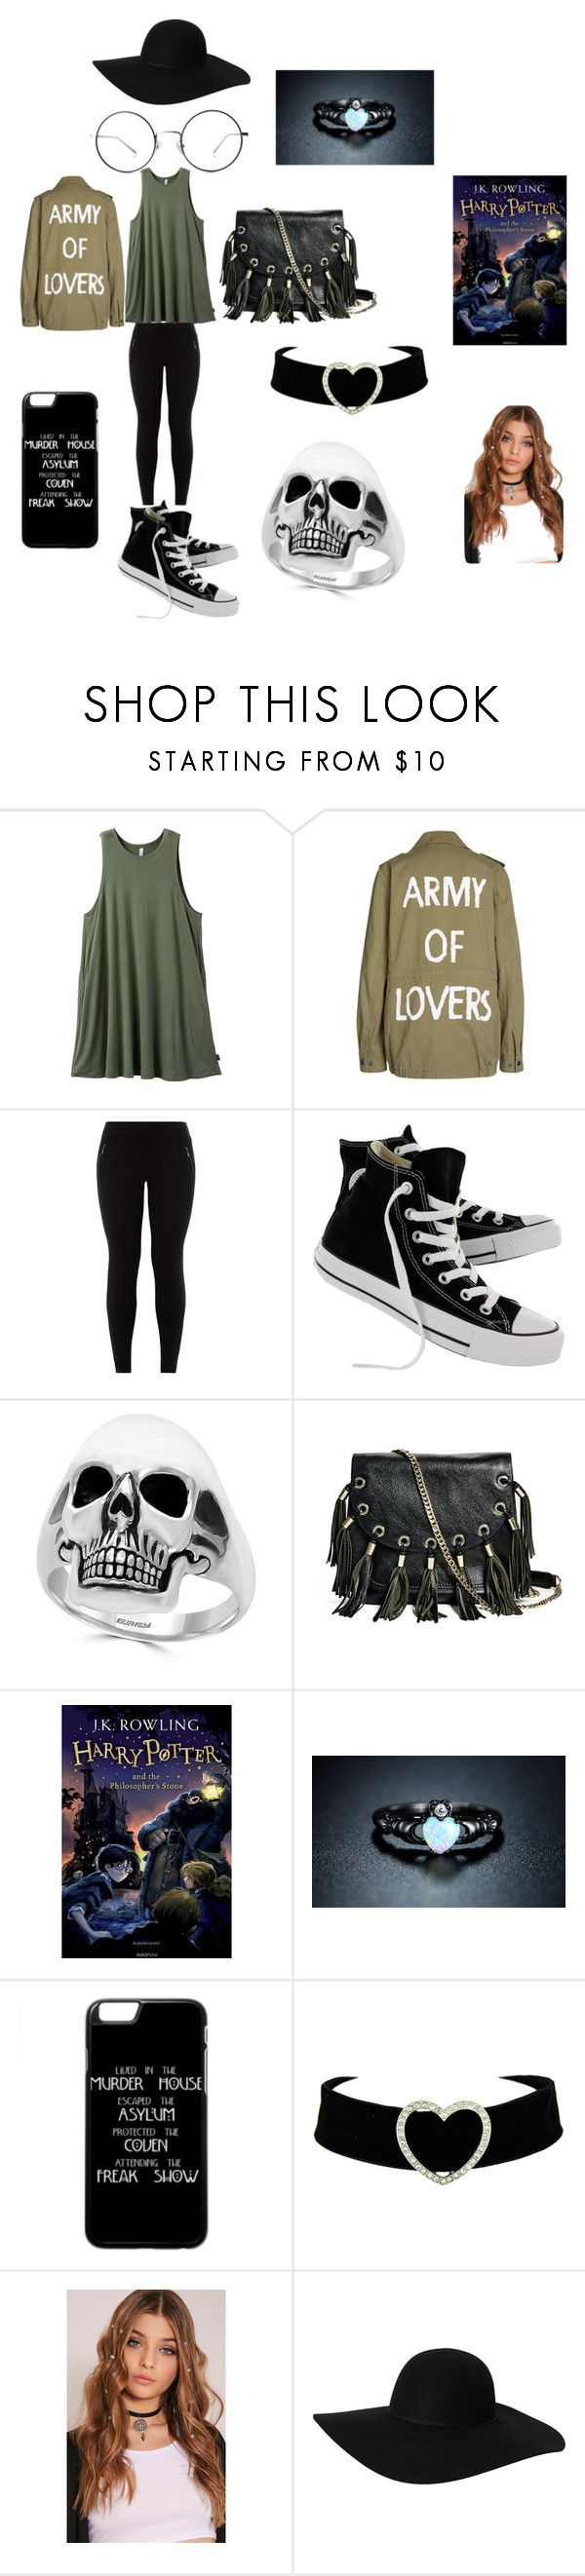 """something i would wear if i was skinny and pretty"" by trashcan-799 ❤ liked on Polyvore featuring RVCA, SET, New Look, Converse, Effy Jewelry, GUESS by Marciano, Sevil Designs and Monki"